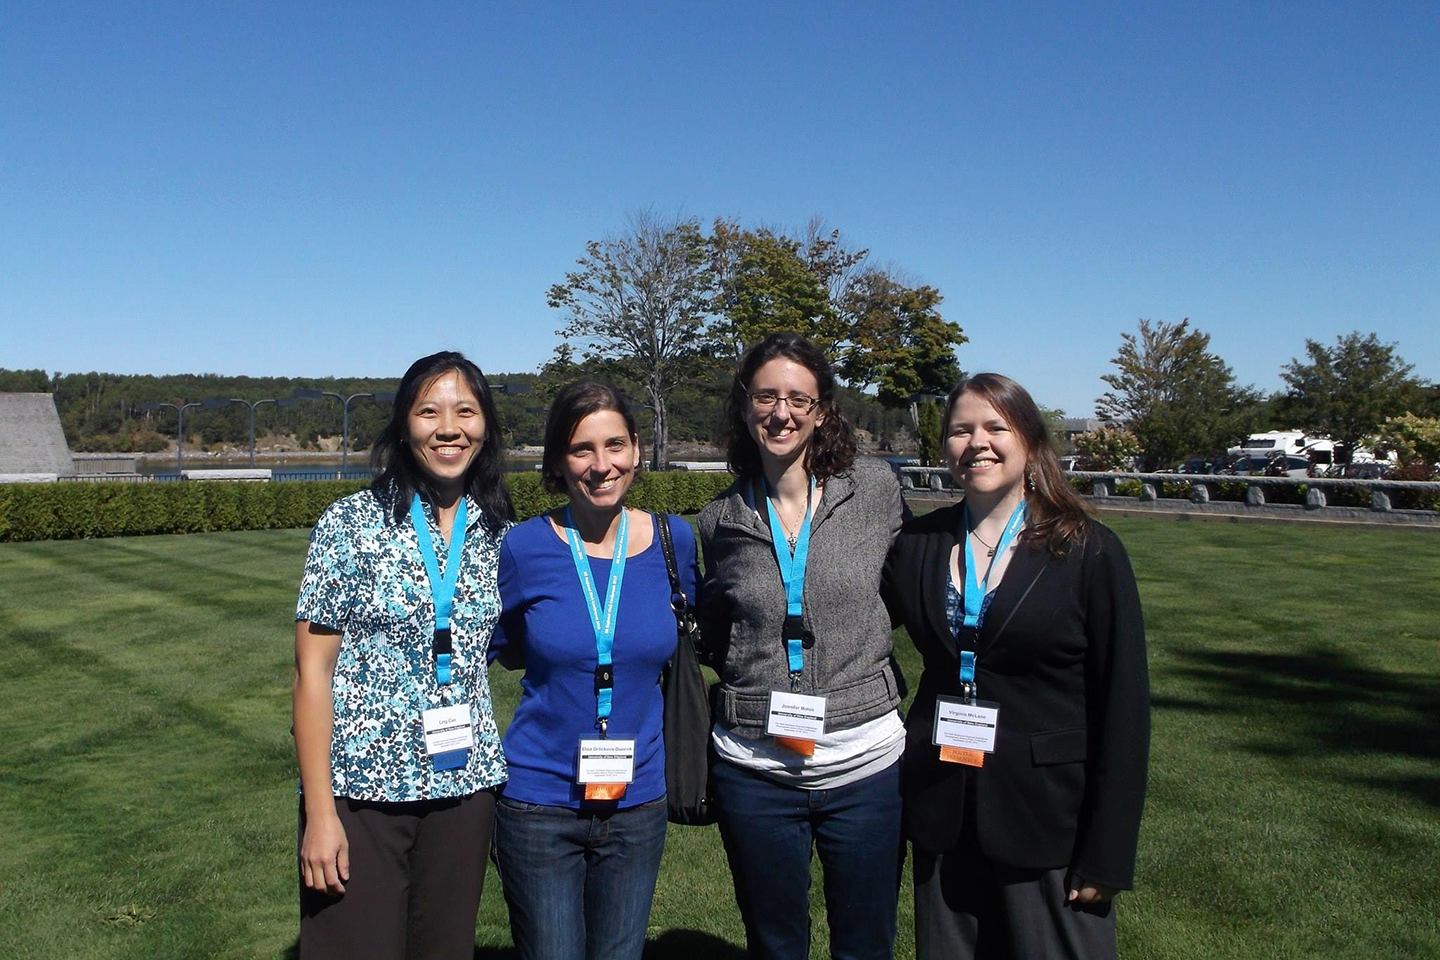 GSBSE faculty member Ling Cao, M.D., Ph.D., associate professor in the department of Biomedical Sciences, College of Osteopathic Medicine, at a local conference with GSBSE student and Eliza Grlickova-Duzevik, M.D., Ph.D. (UMaine '17), lab manager Jennifer Malon, M.S., M.P.H., and GSBSE student Ginny McLane, Ph.D. (UMaine '16).